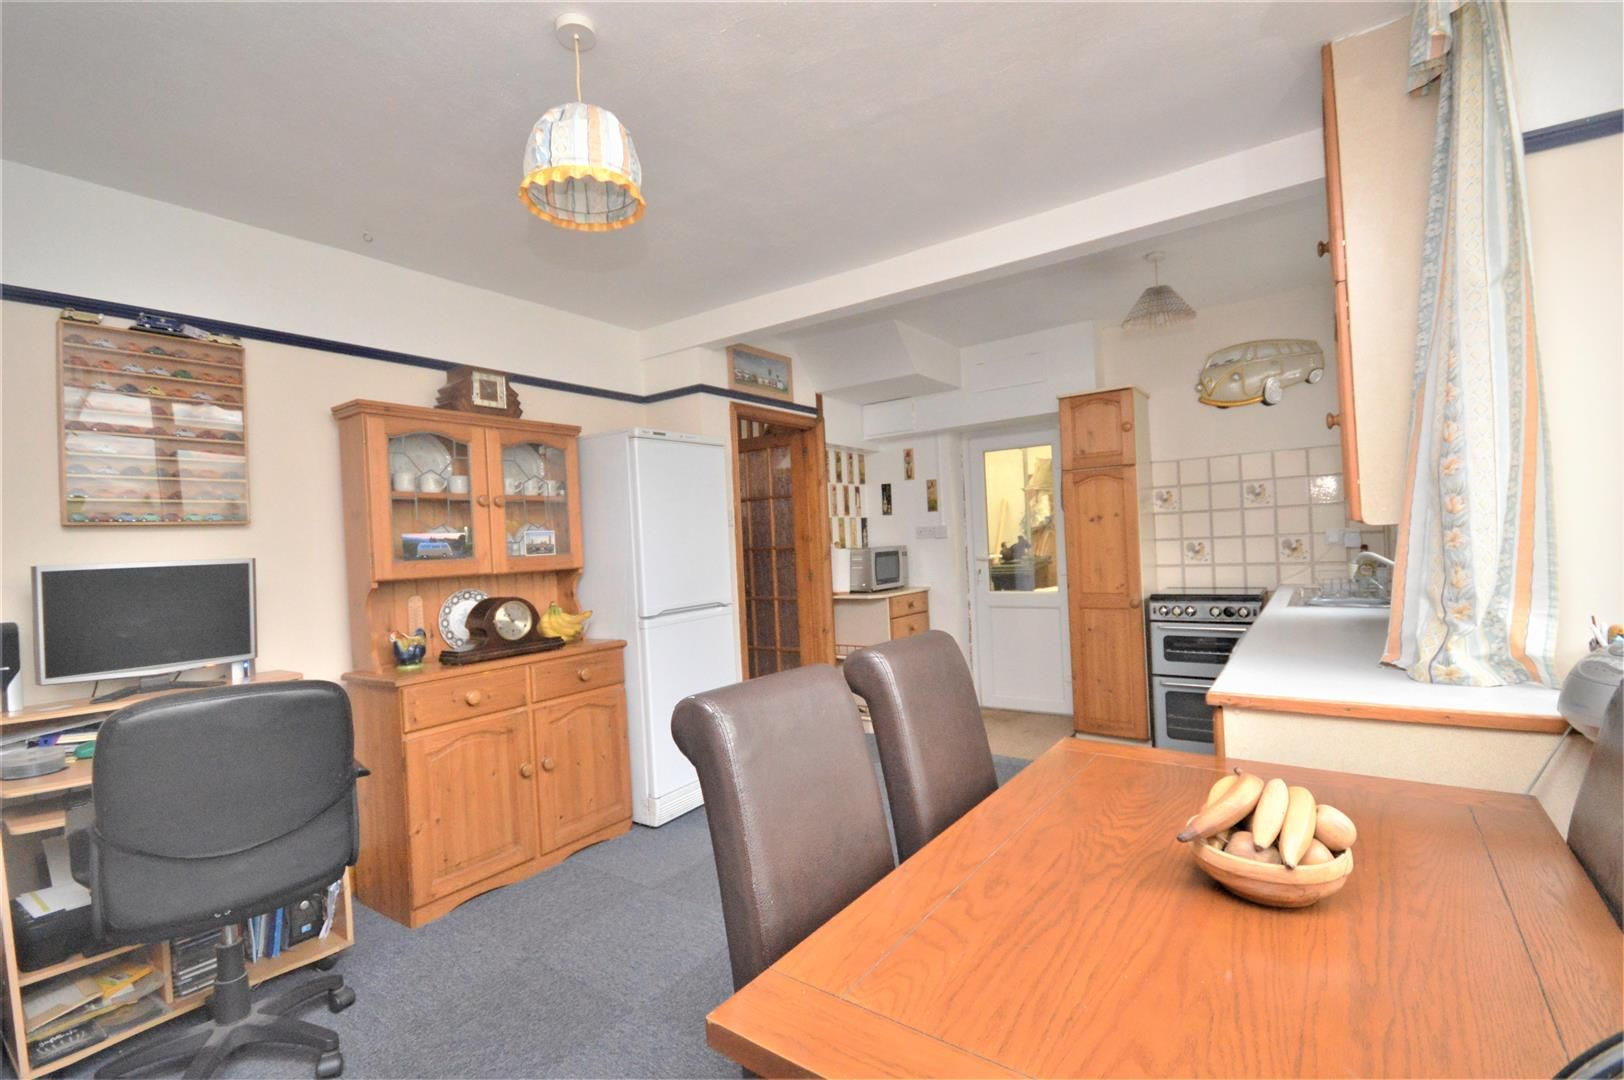 3 bed semi-detached for sale in Hereford 3